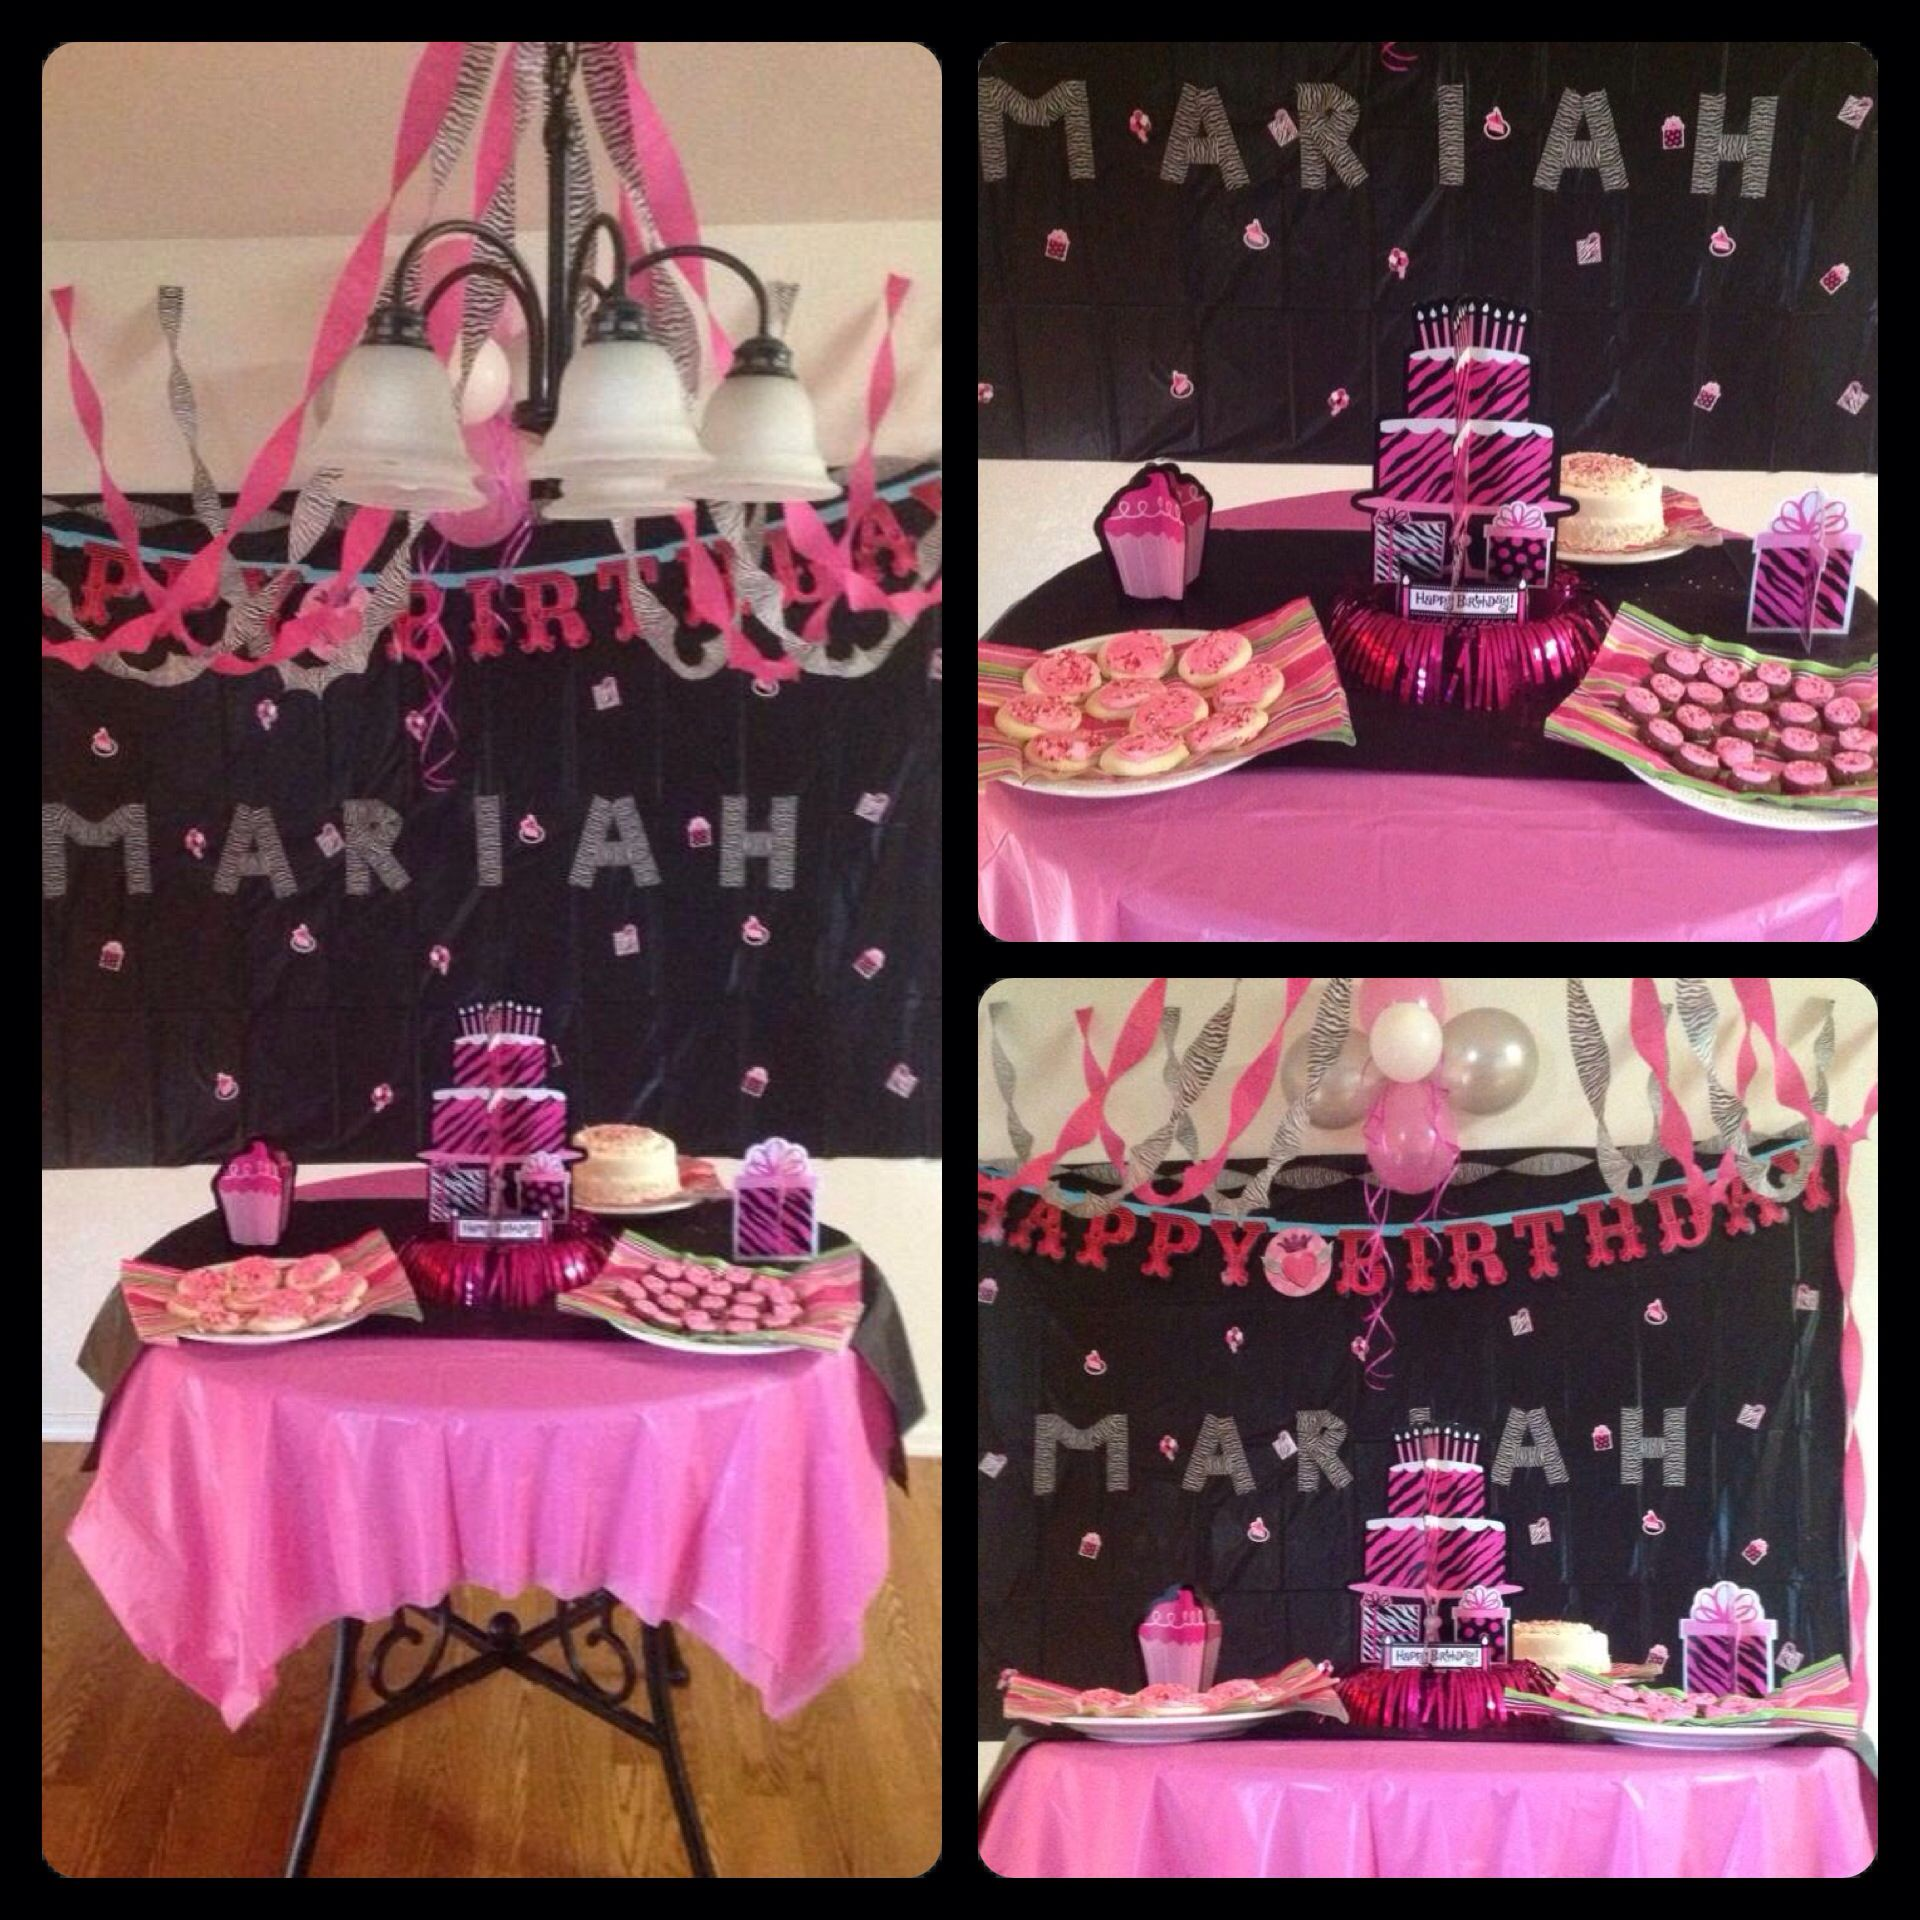 Party Ideas Had My 10 Year Old Celebrate Her Birthday With Some Friends Movies Sleepover And Delicious Breakfast